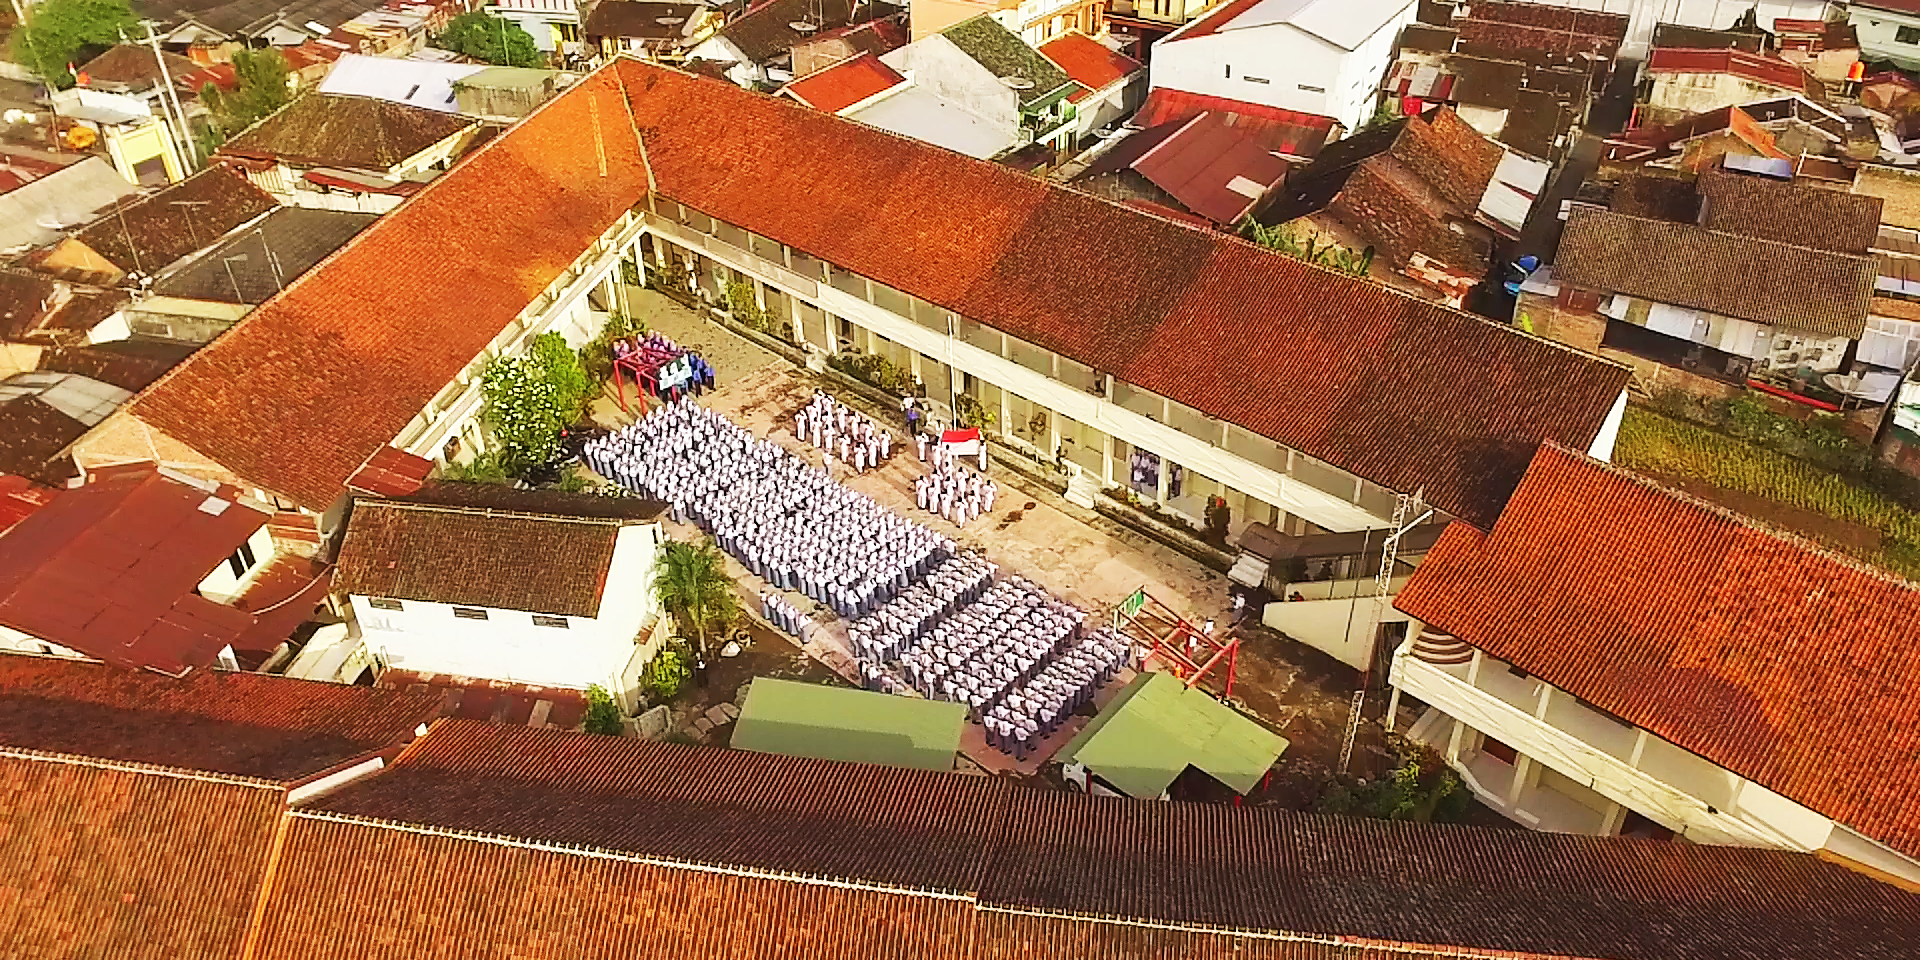 SMK 17 Parakan from the sky